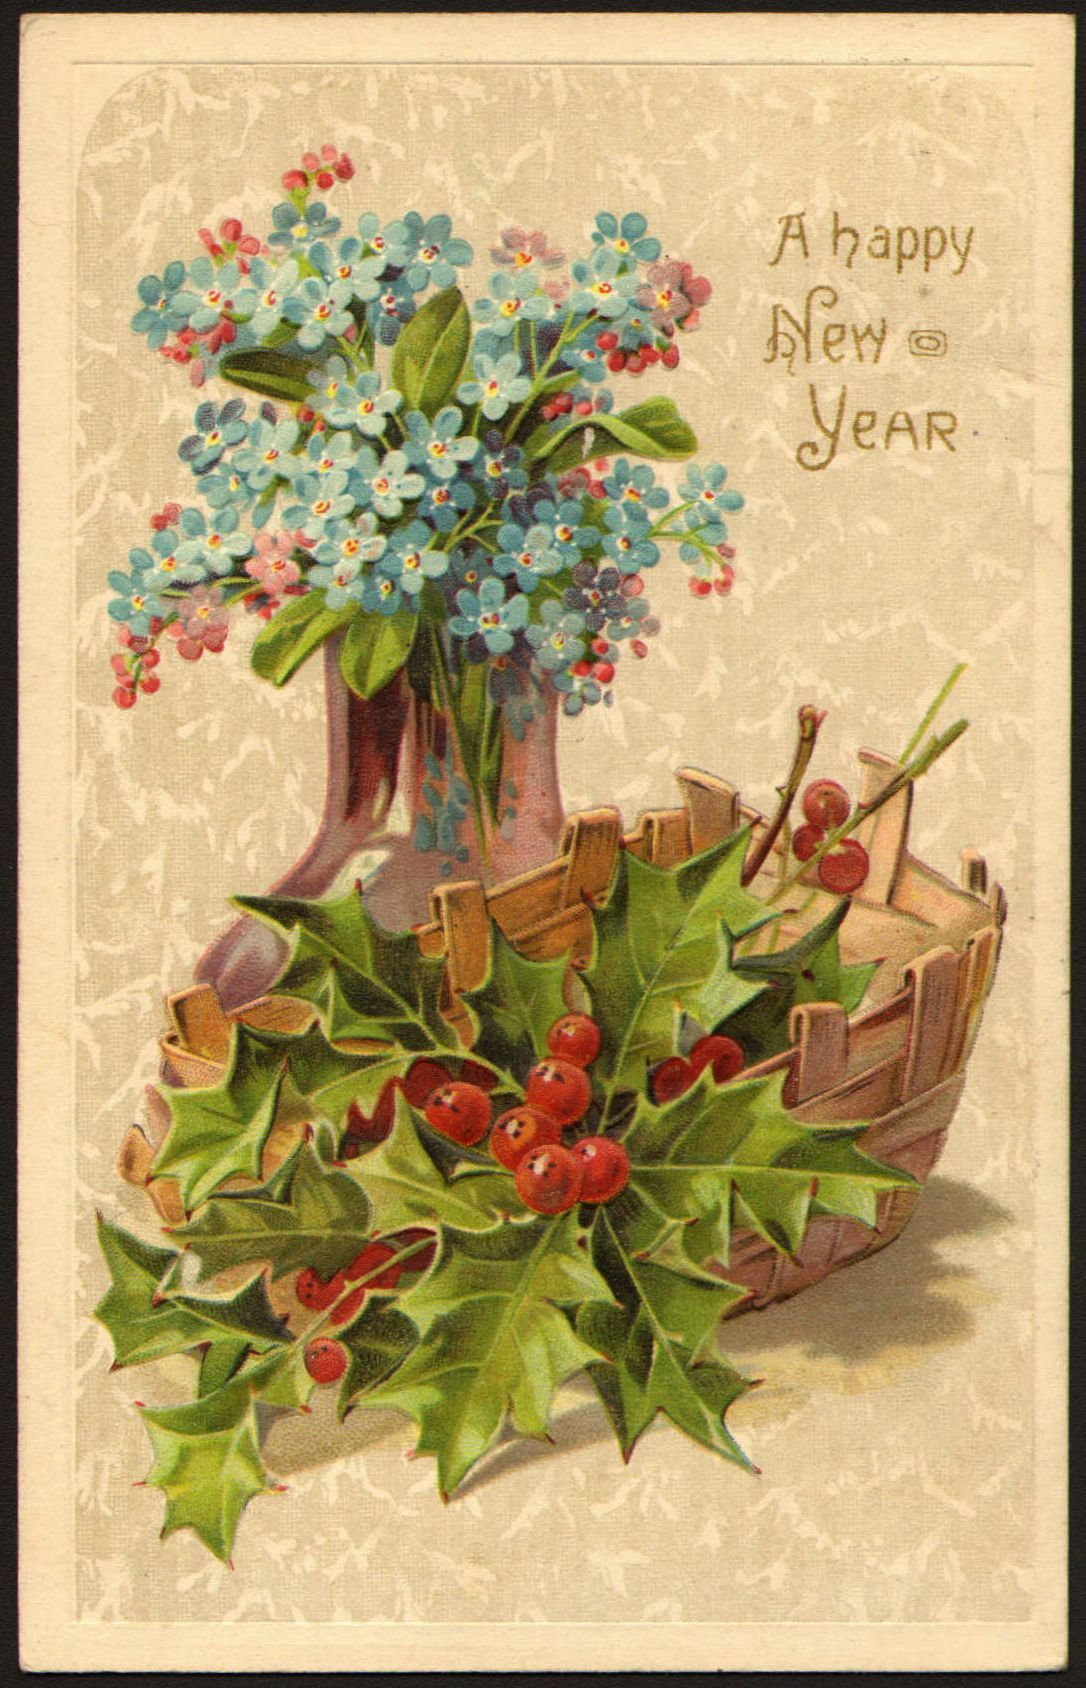 """A post card wishing a Happy New Year with a vase of Forget-me-not flowers: In a German legend, God named all the plants when a tiny unnamed one cried out, """"Forget-me-not, O Lord!"""" God replied, """"That shall be your name."""" Another legend tells when the Creator thought he had finished giving the flowers their colours, he heard one whisper """"Forget me not!"""" There was nothing left but a very small amount of blue, but the forget-me-not was delighted to wear such a light blue shade."""